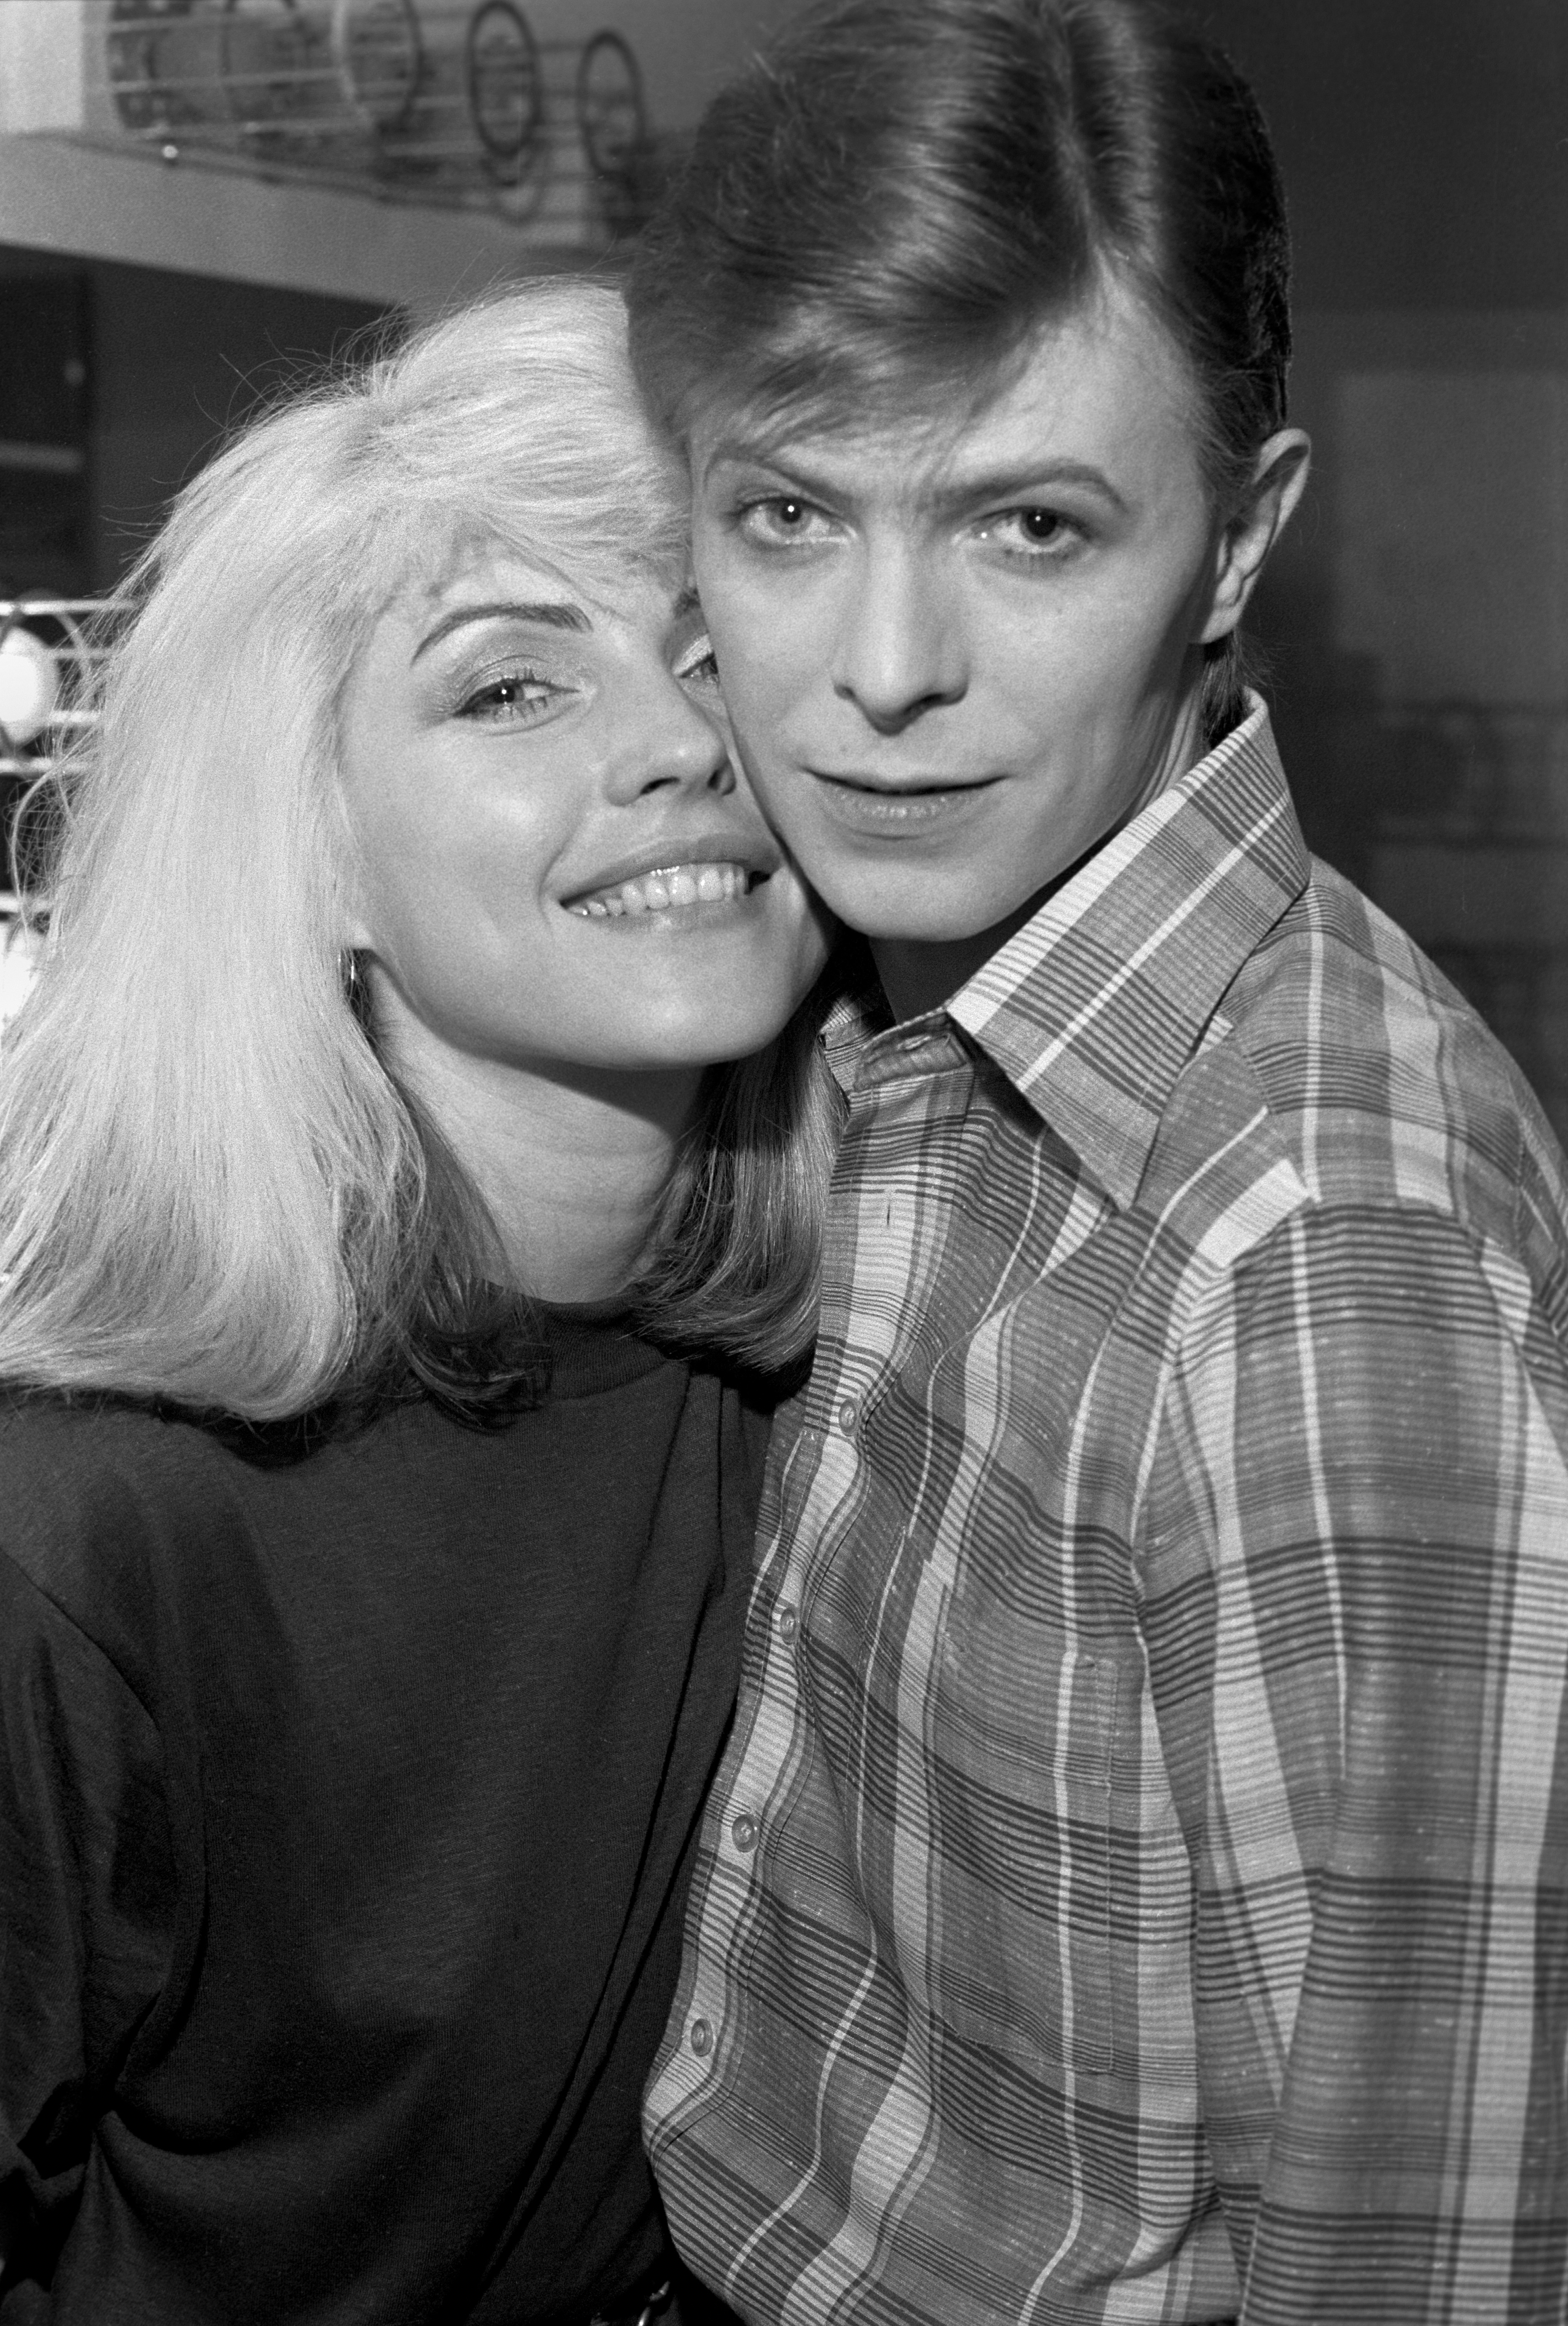 Chris Stein & Blondie Photography Exhibition at Somerset House